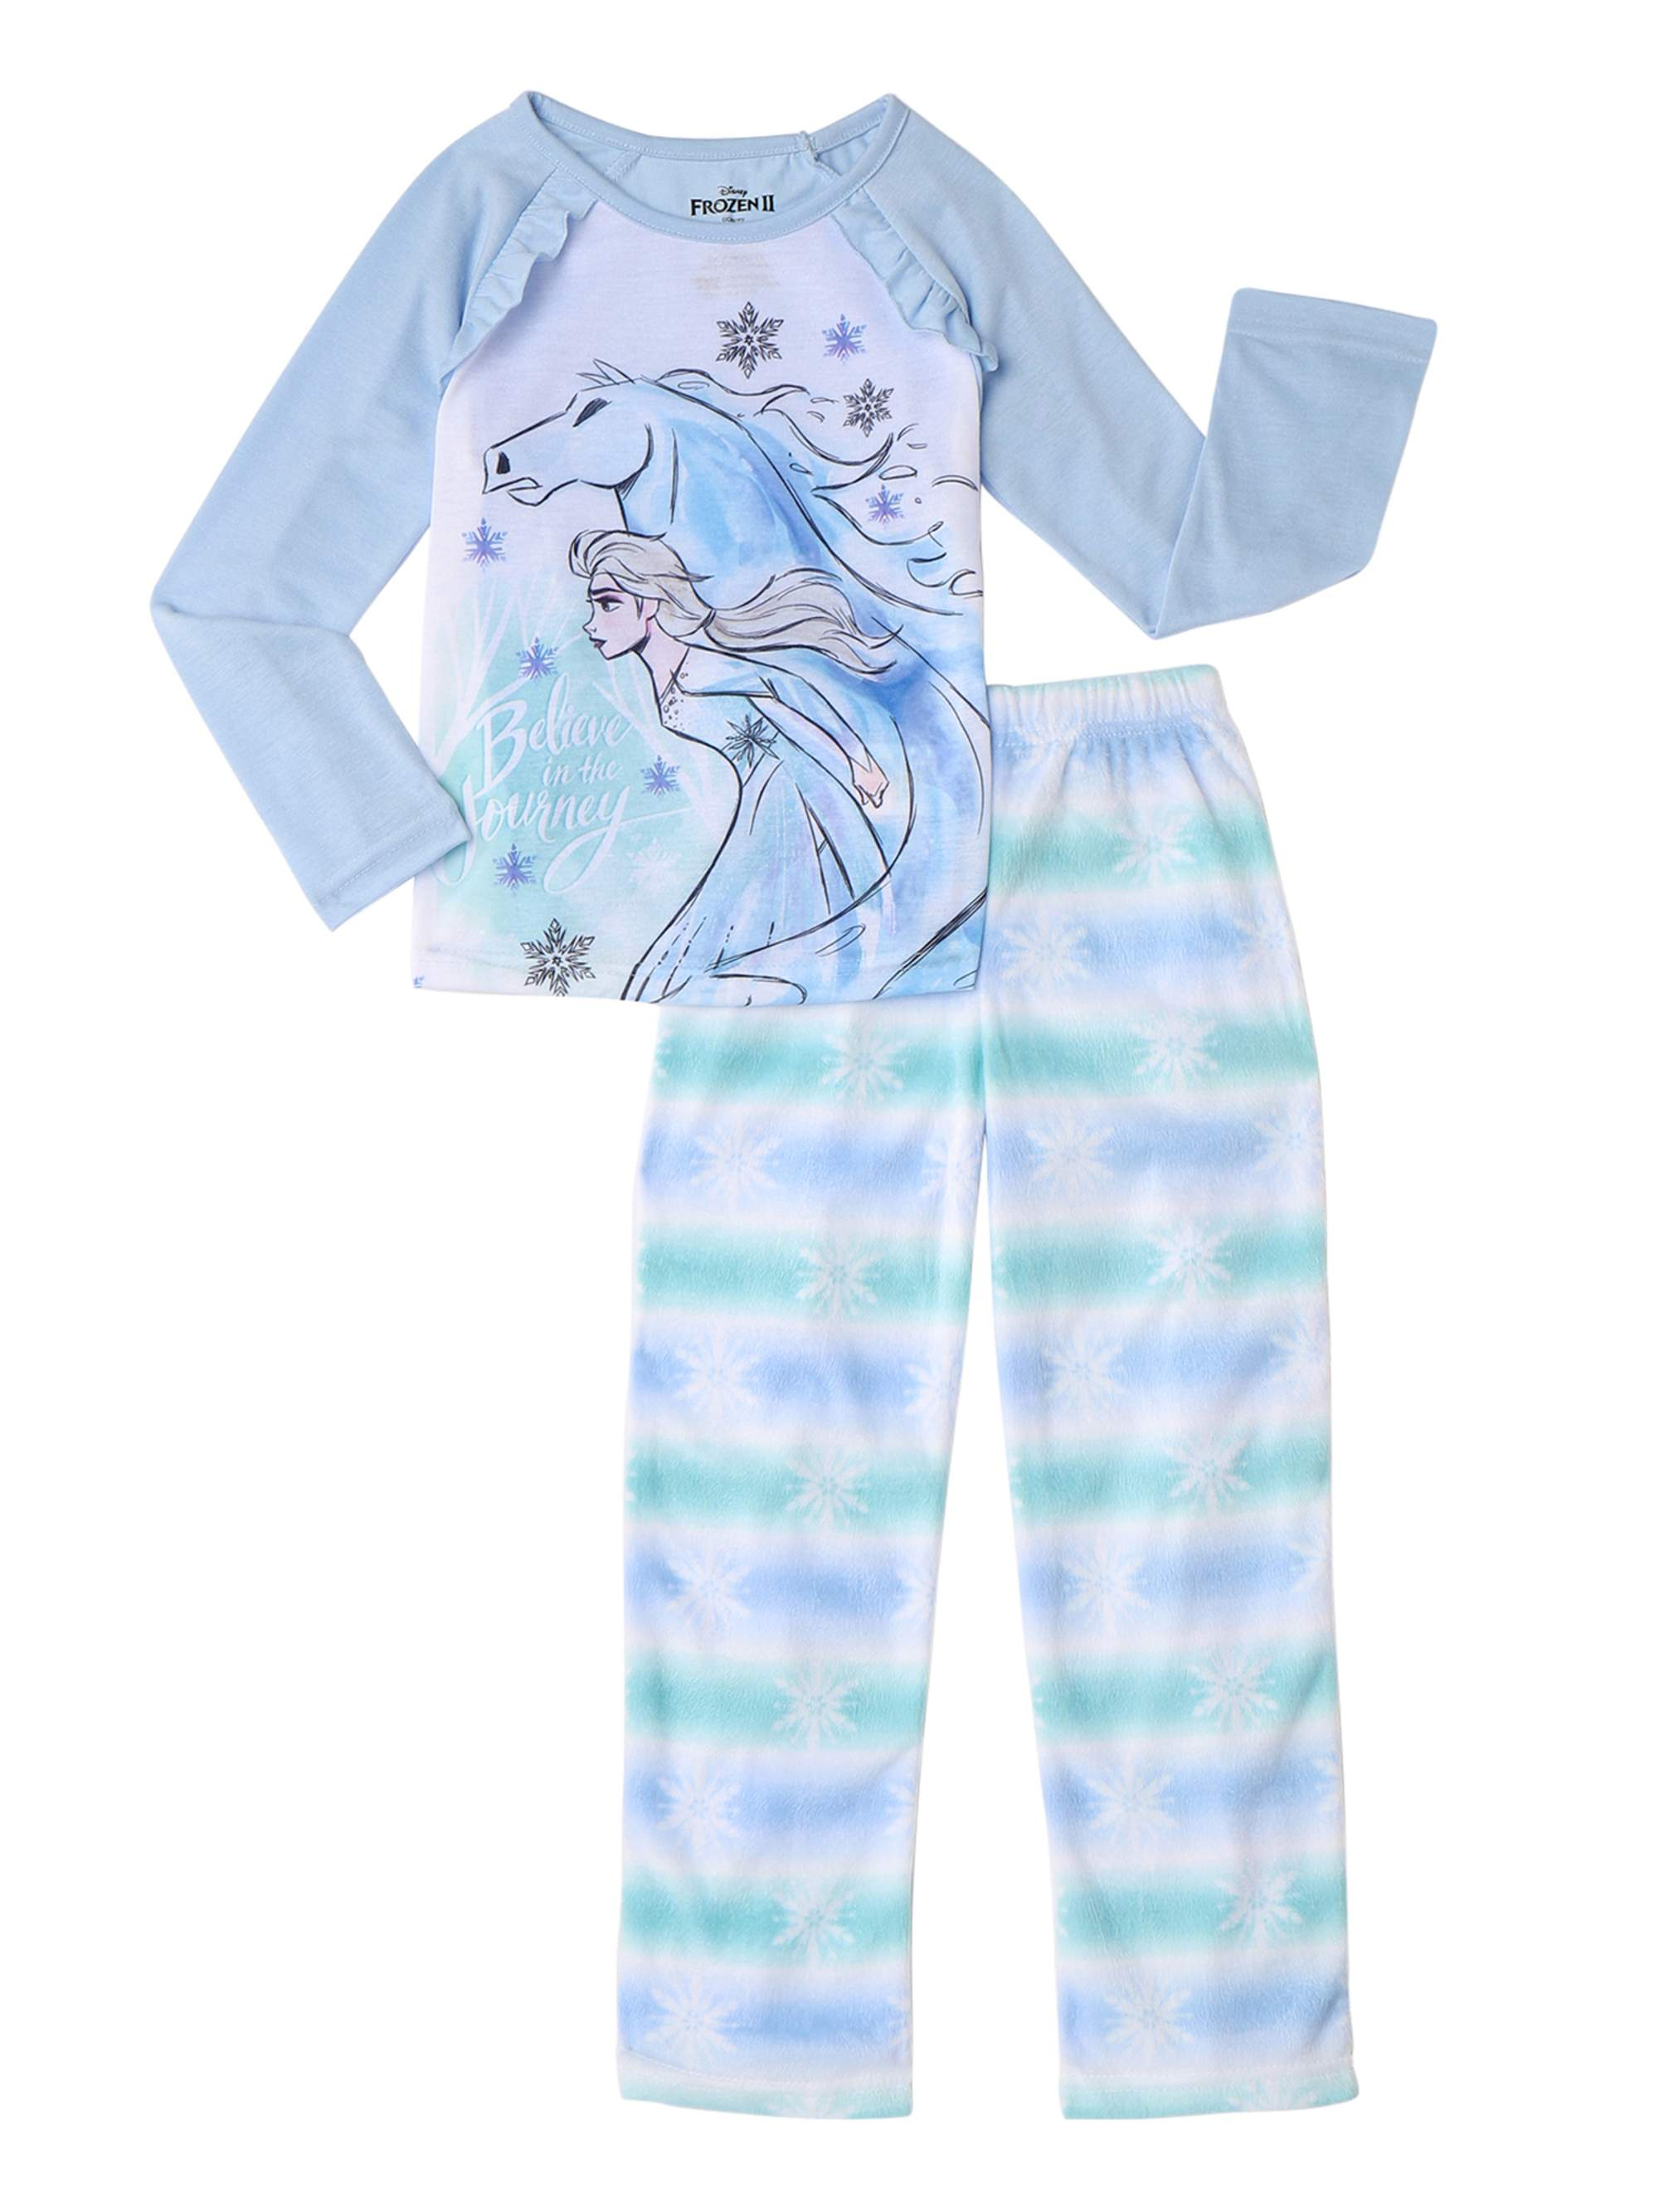 Frozen 2 Girl's Ana & Elsa 2-Piece Pajama Set (Little Girls & Big Girls)